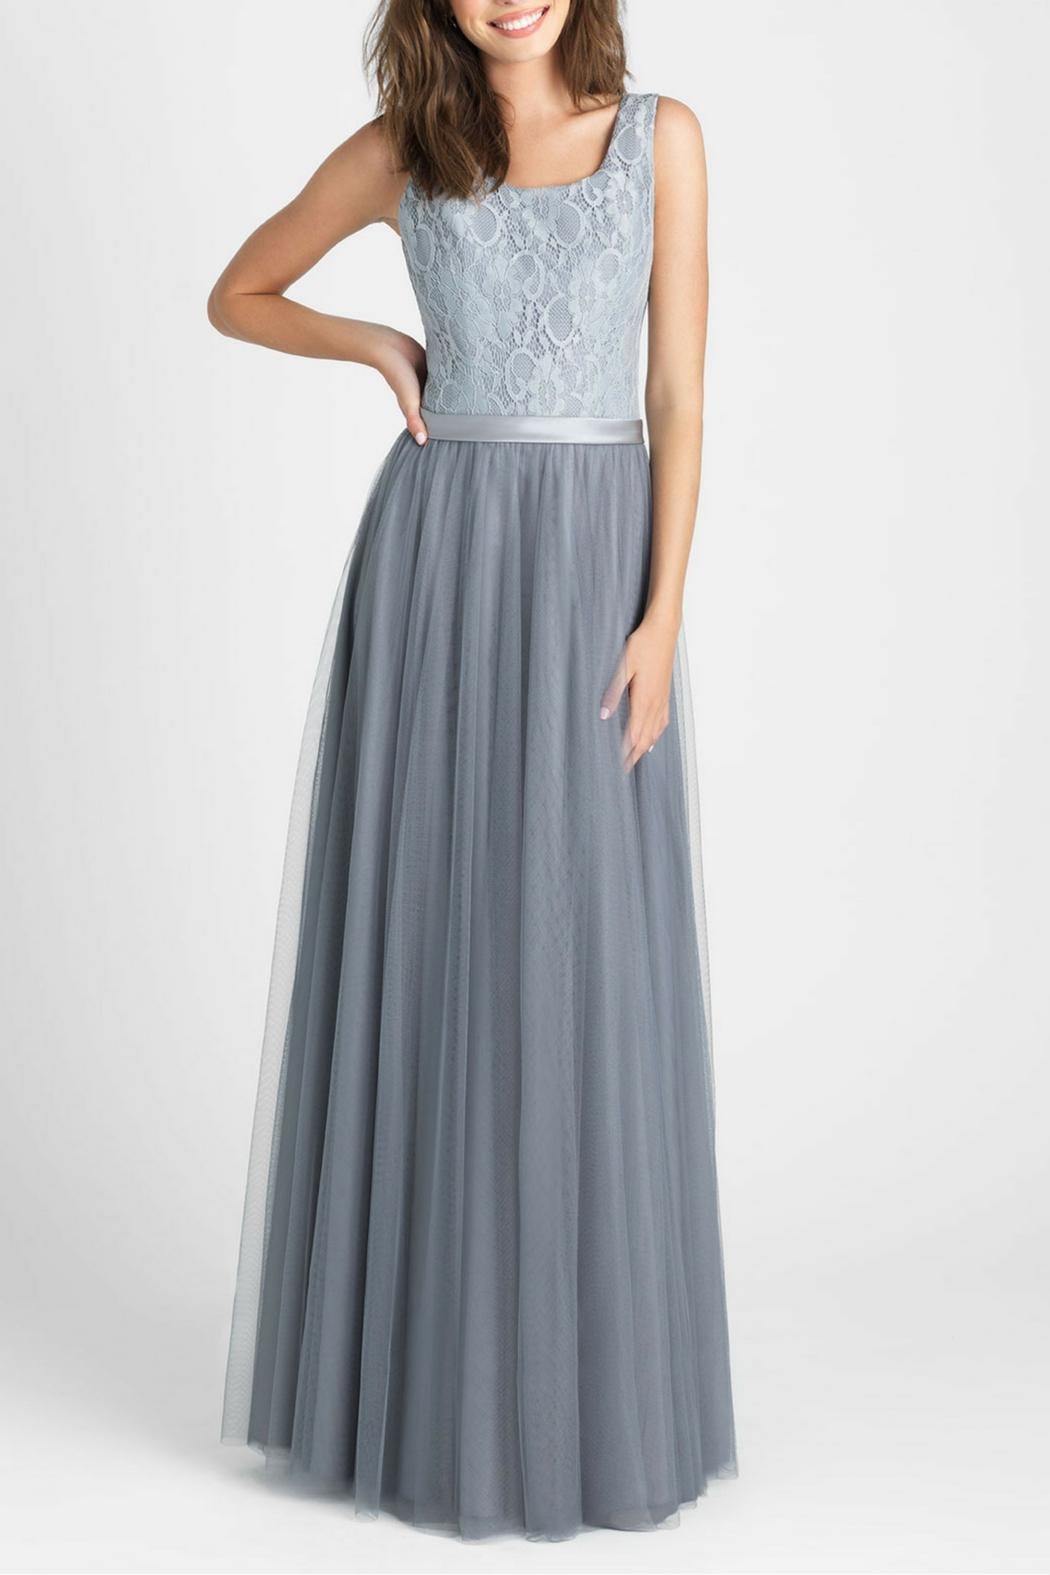 Allure Bridals Lace Tulle Bridesmaid Gown - Main Image